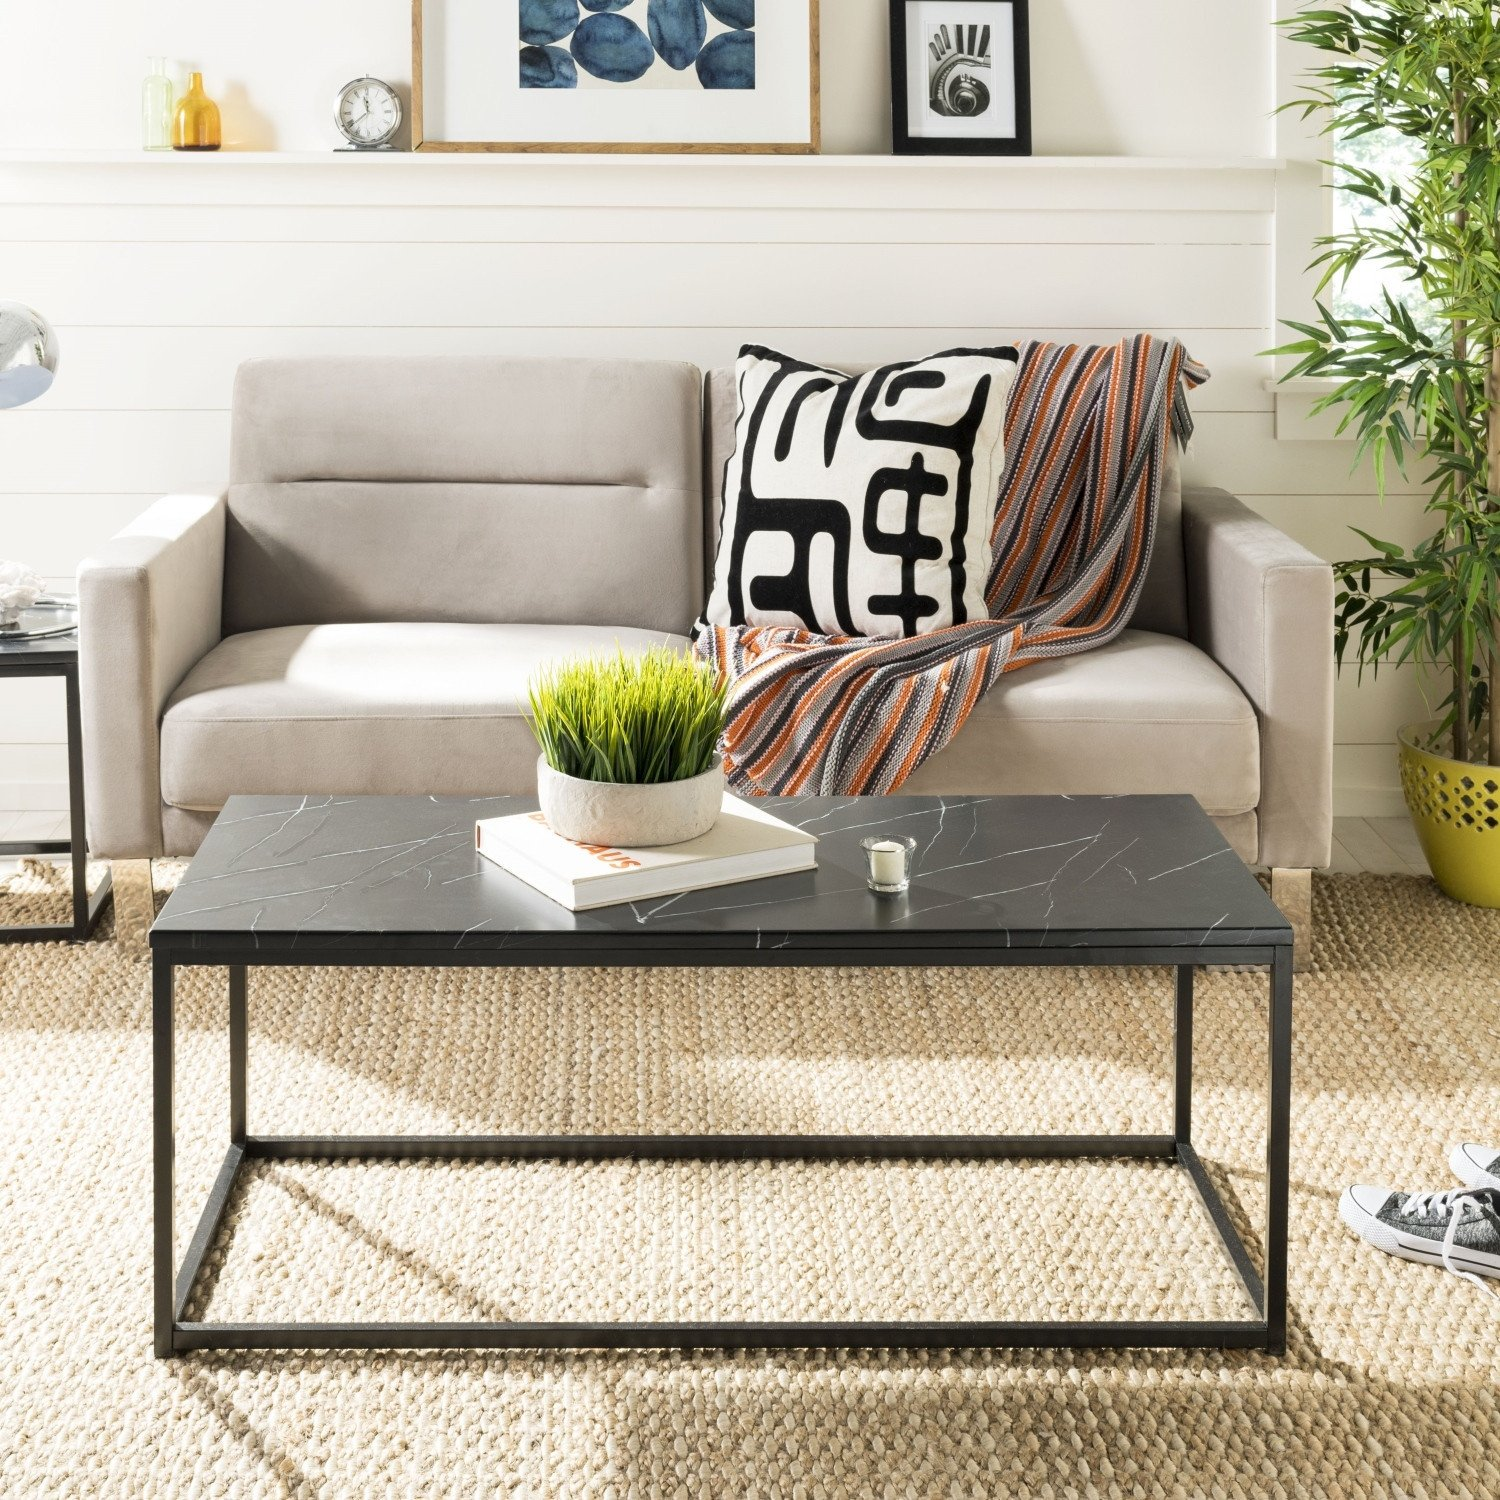 Ideas for Coffee Table Decor New 4 Easy Coffee Table Decor Ideas & Tips Hayneedle